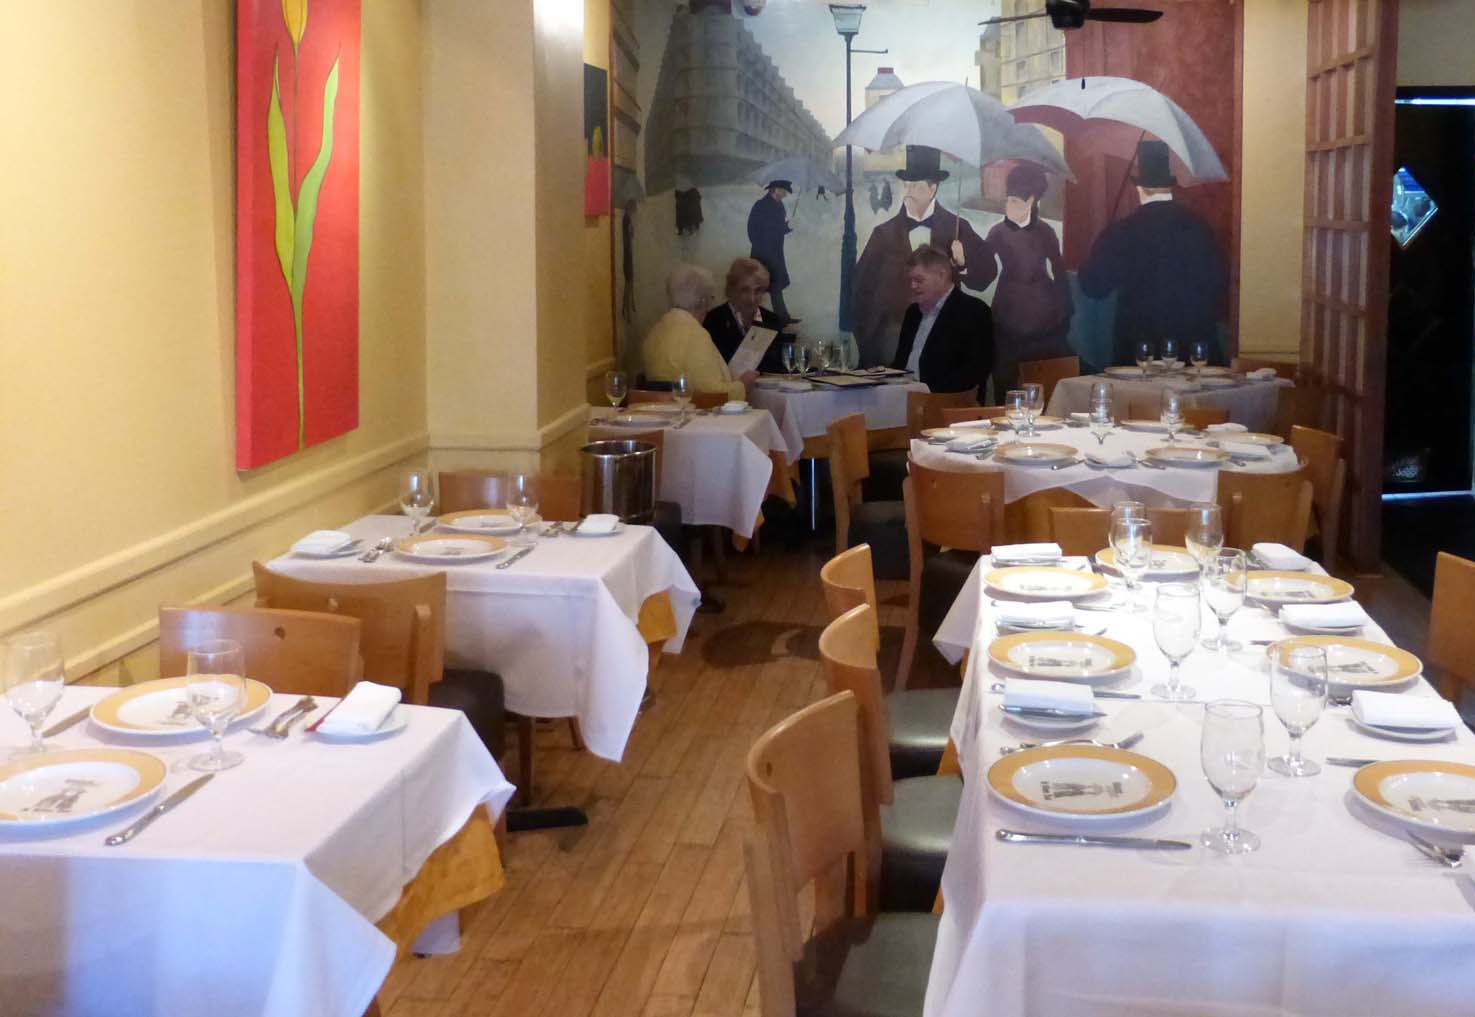 seated by a mural of Caillebotte 's  1877 rainy paris street scene, patrons enjoy an early lunch. photos by ann carper.